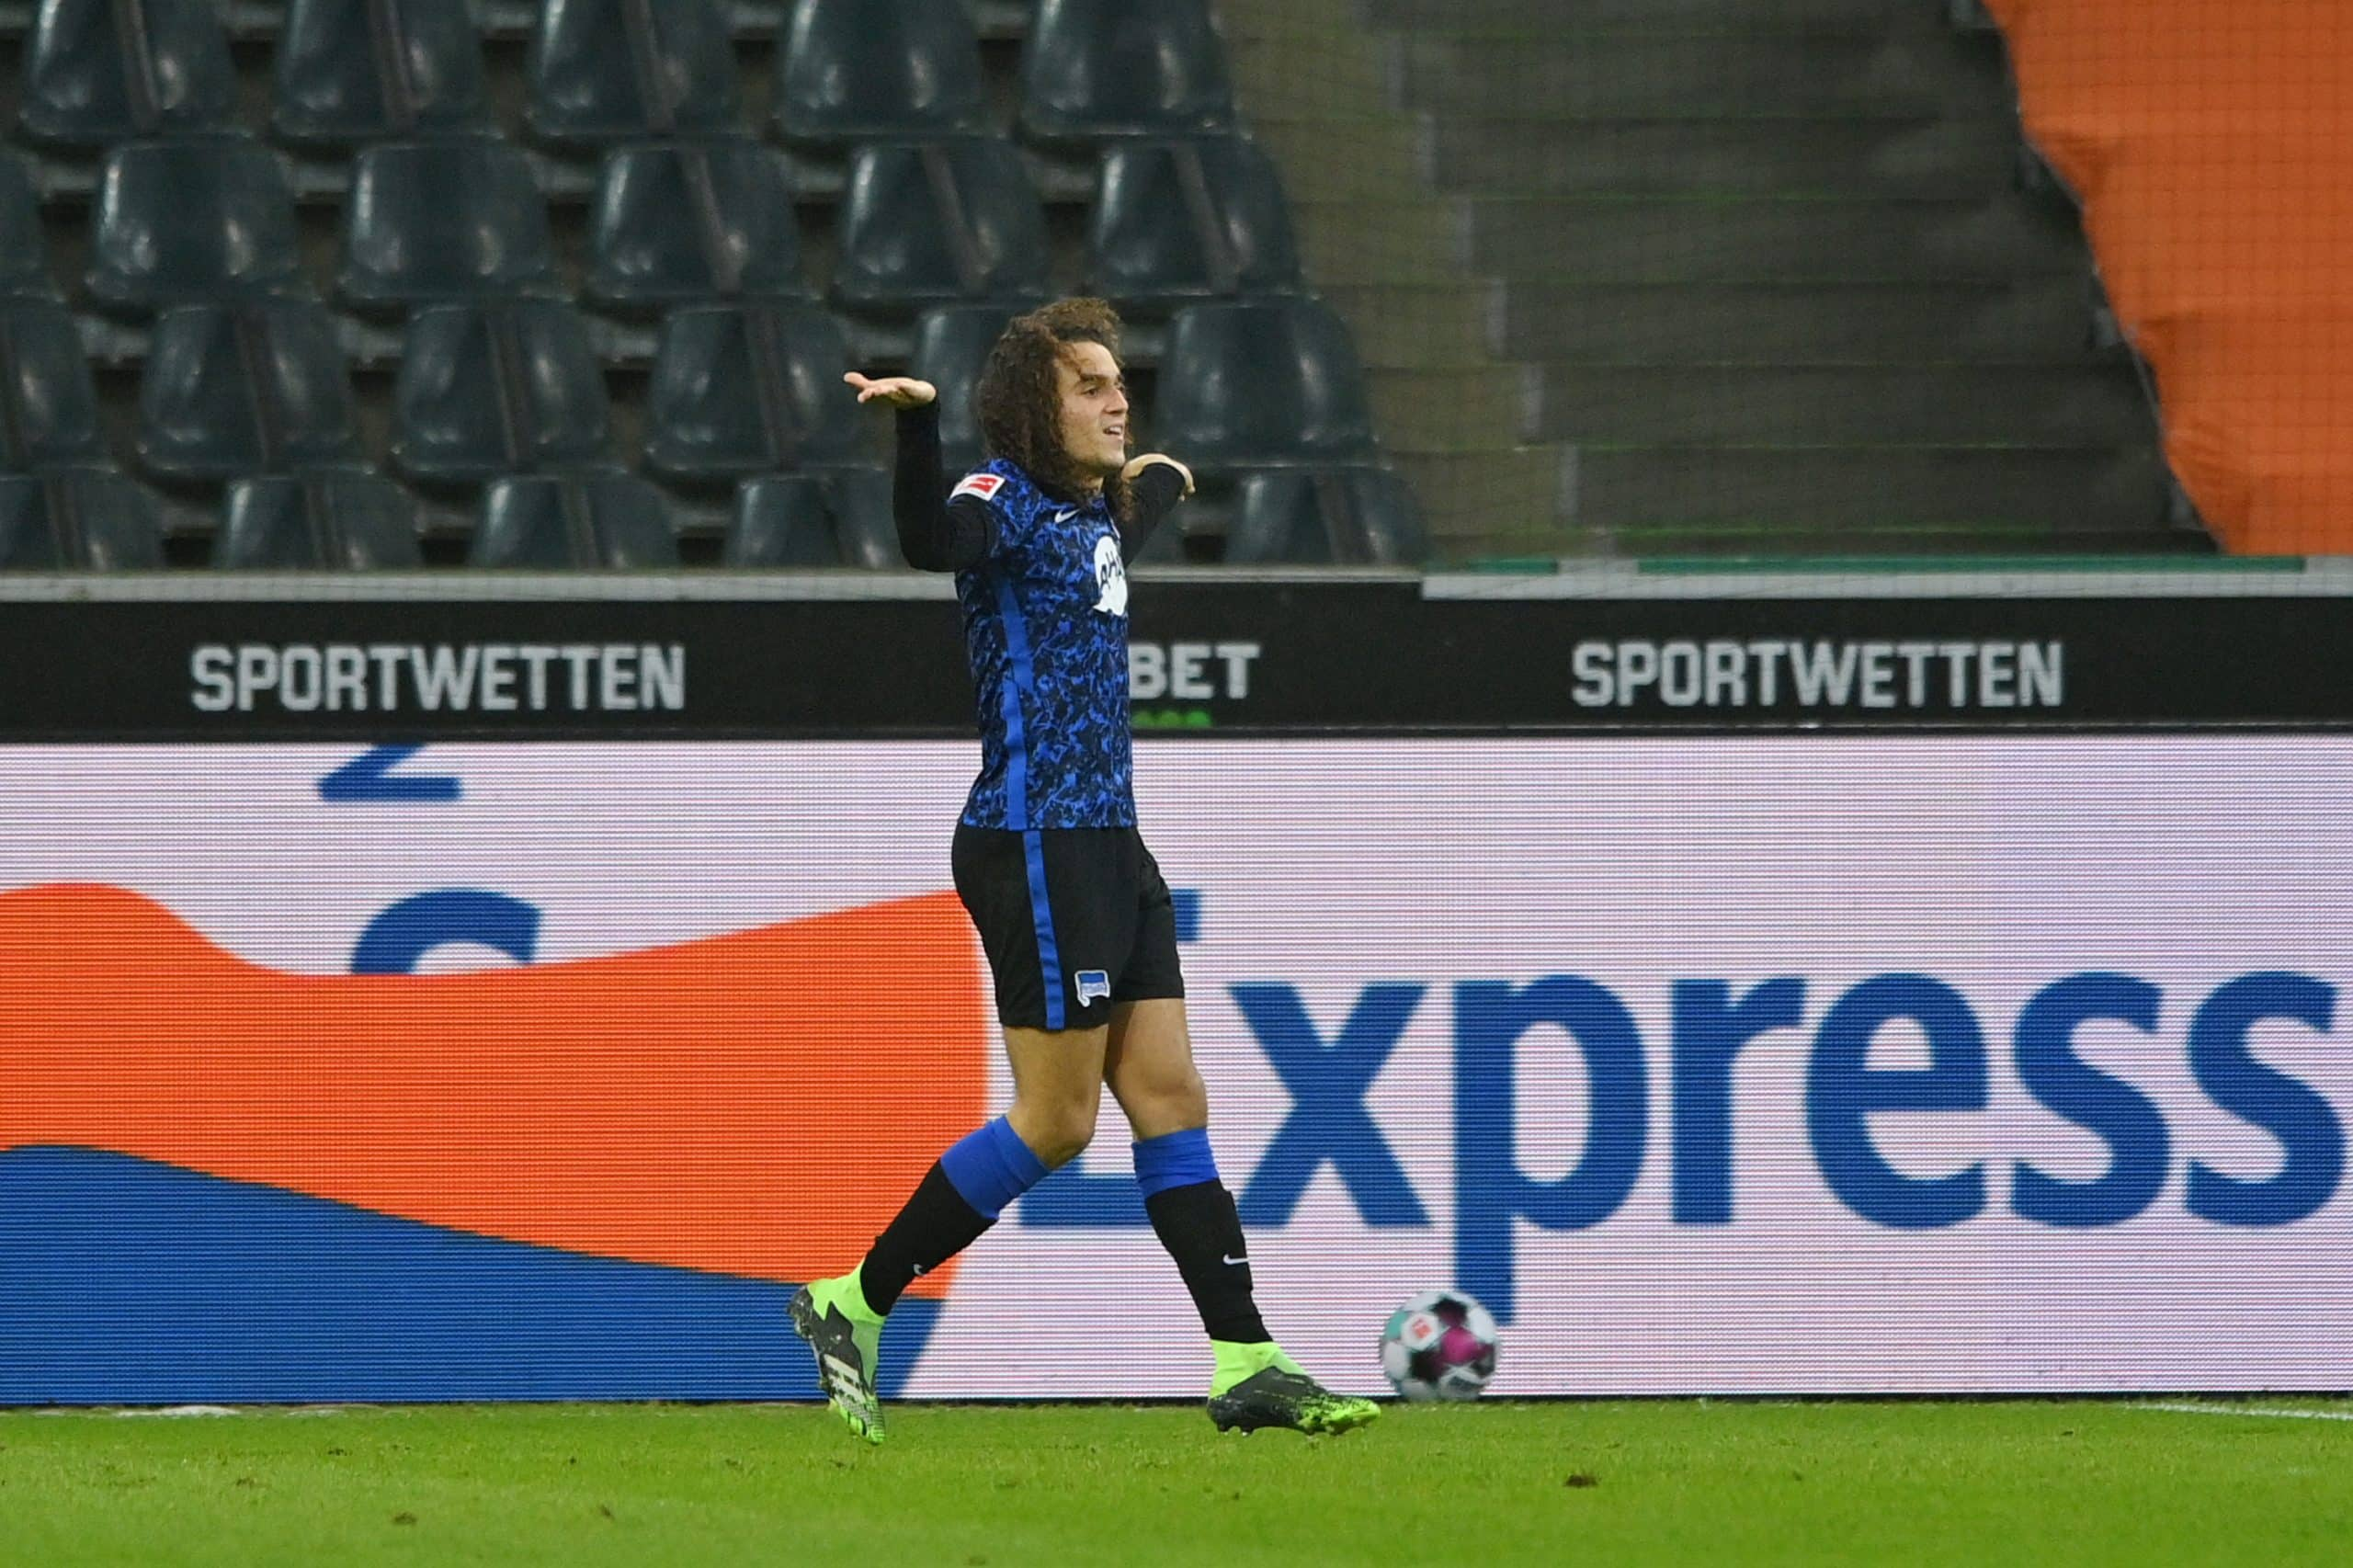 Guendouzi's loan stint hits rocky patch as Hertha dragged into relegation scrap with Arsenal man spotted arguing with teammates - 101 great goals